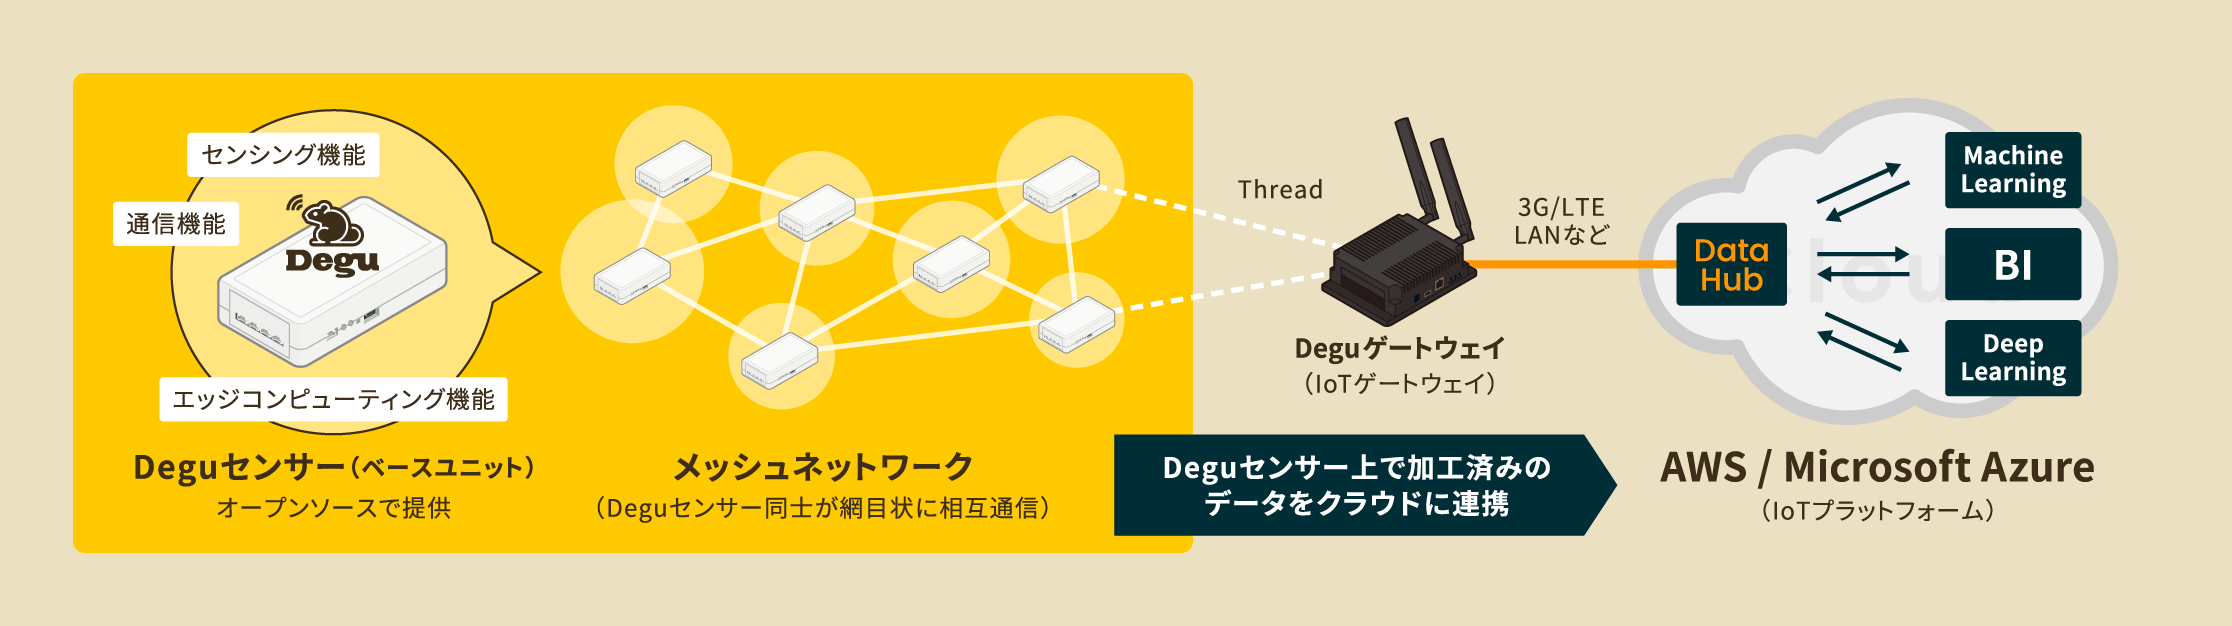 about_degu-g3_01